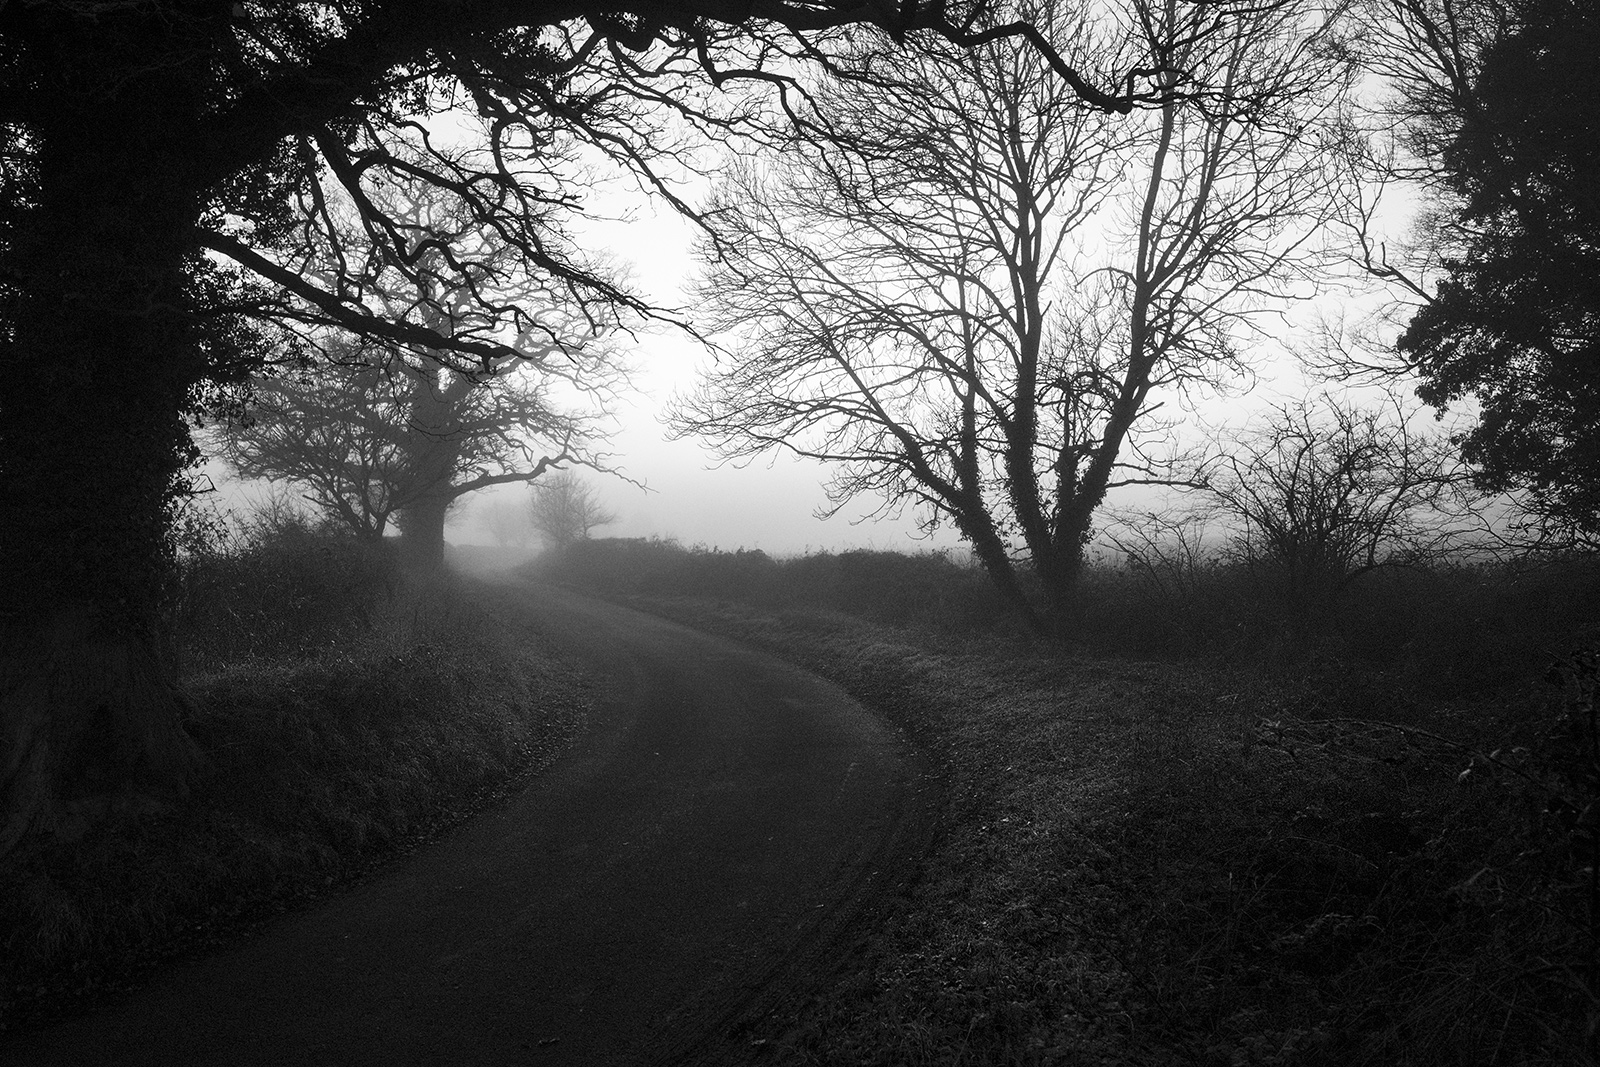 Country road meandering under trees in to fog in distance Stratfield Mortimer Berkshire UK black and white landscape composition nature rural countryside documentary photograph ©P. Maton 2018 eyeteeth.net